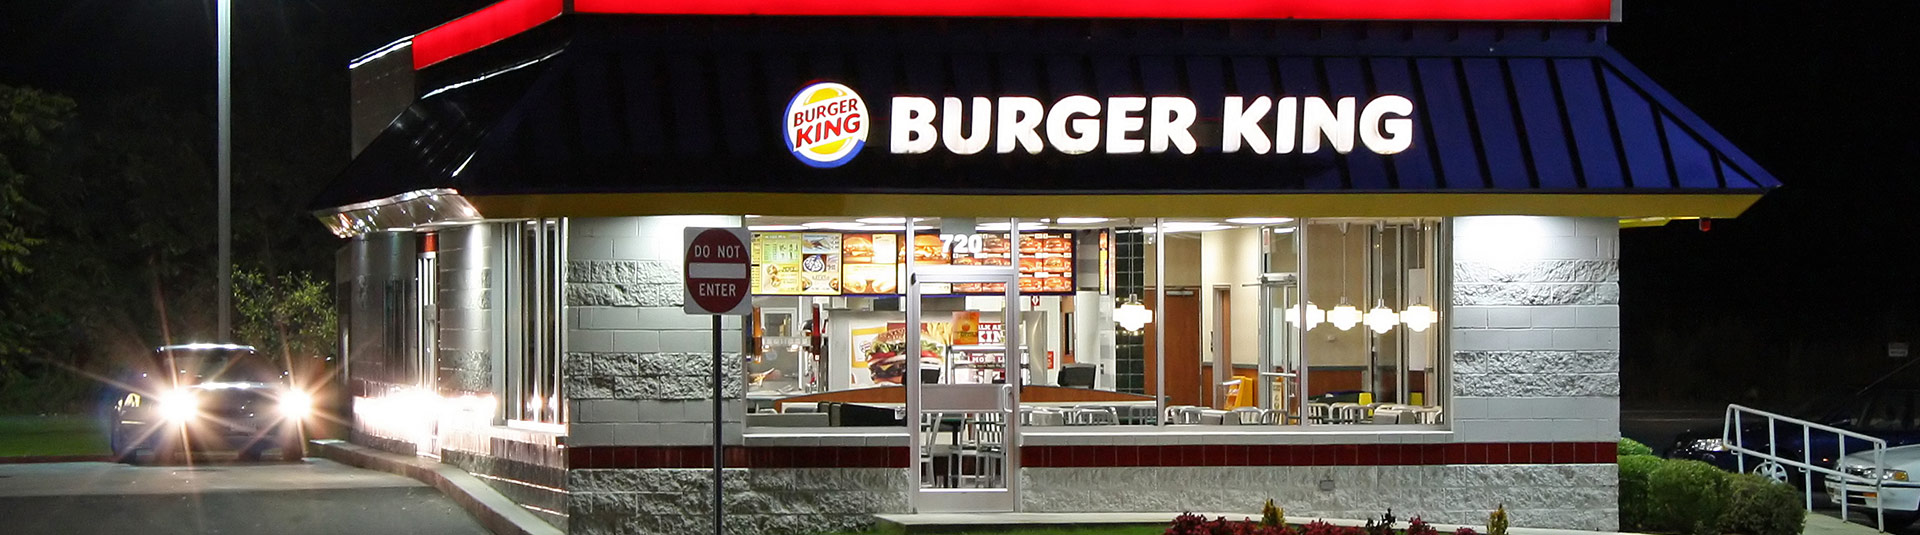 Burger King Avoids The Venue Restrictions Of The California Franchise Relations Act